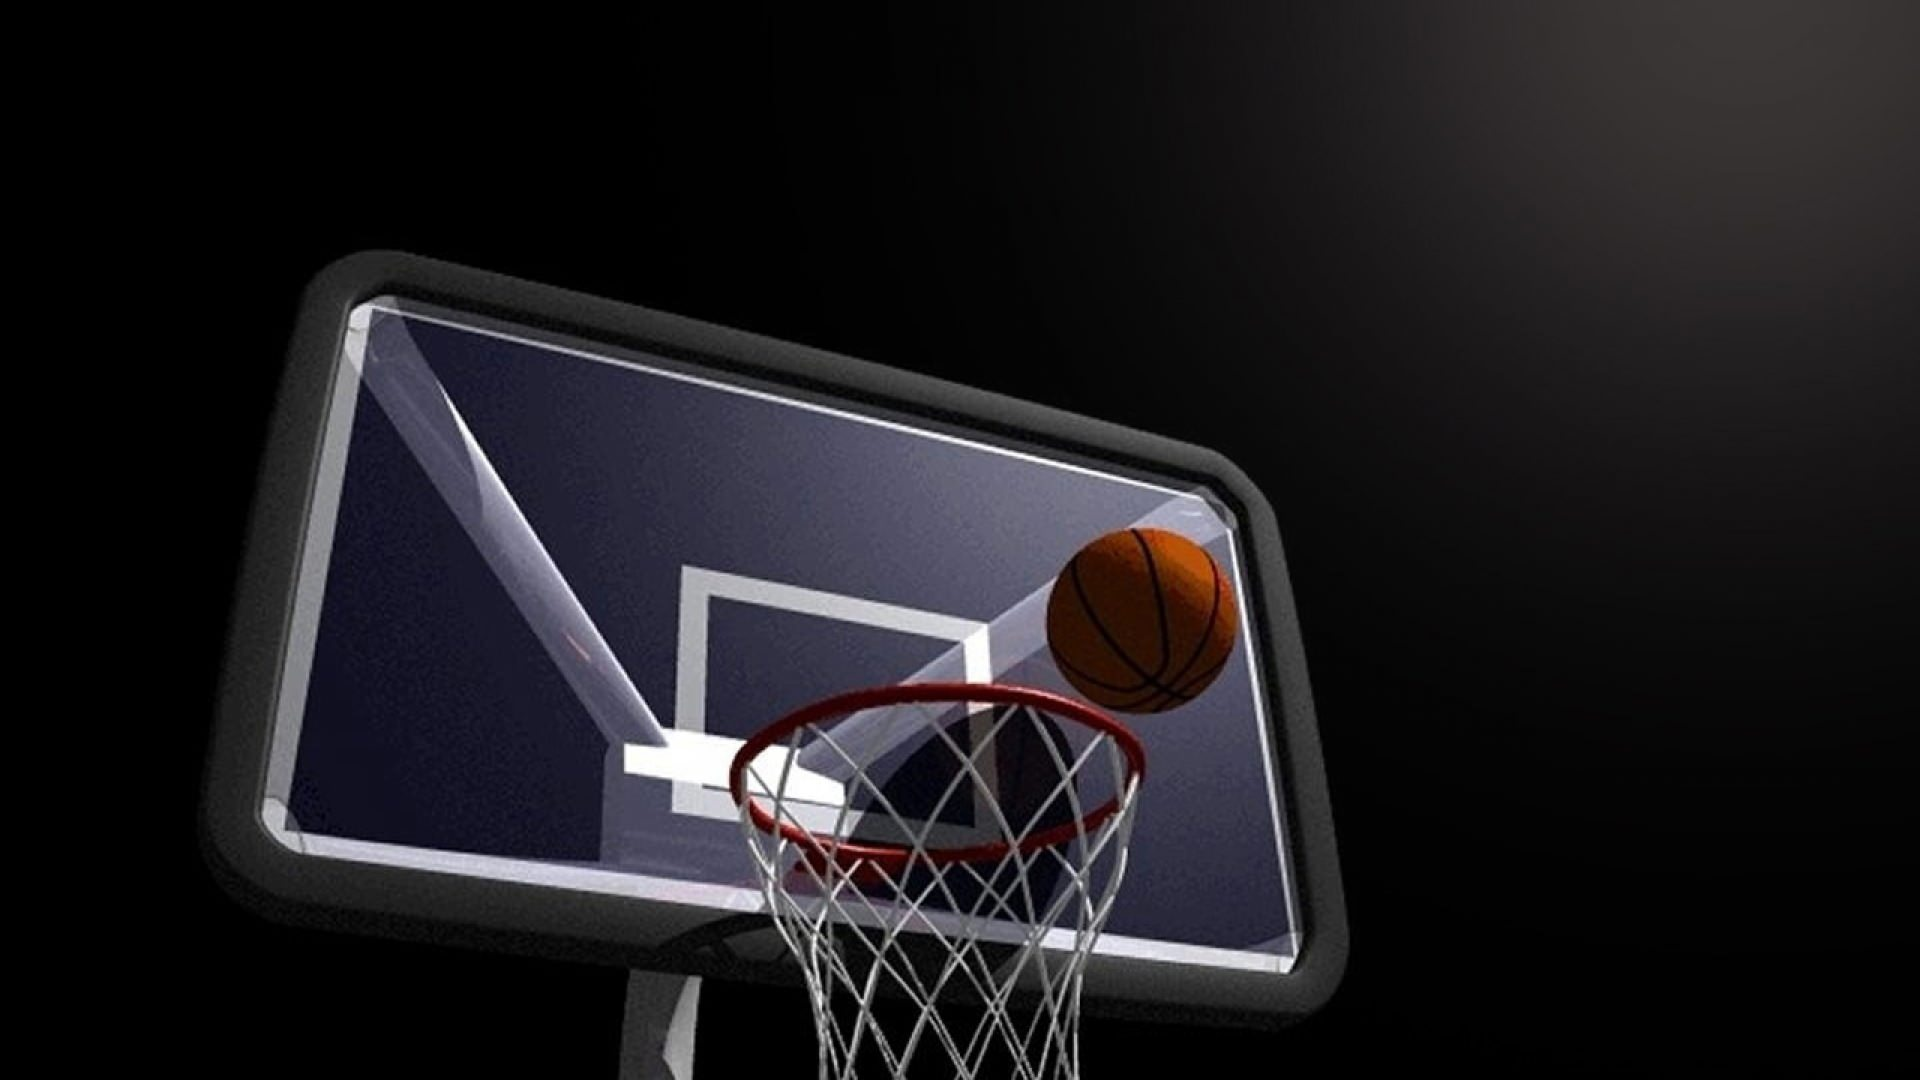 Basketball Hoop Wallpaper